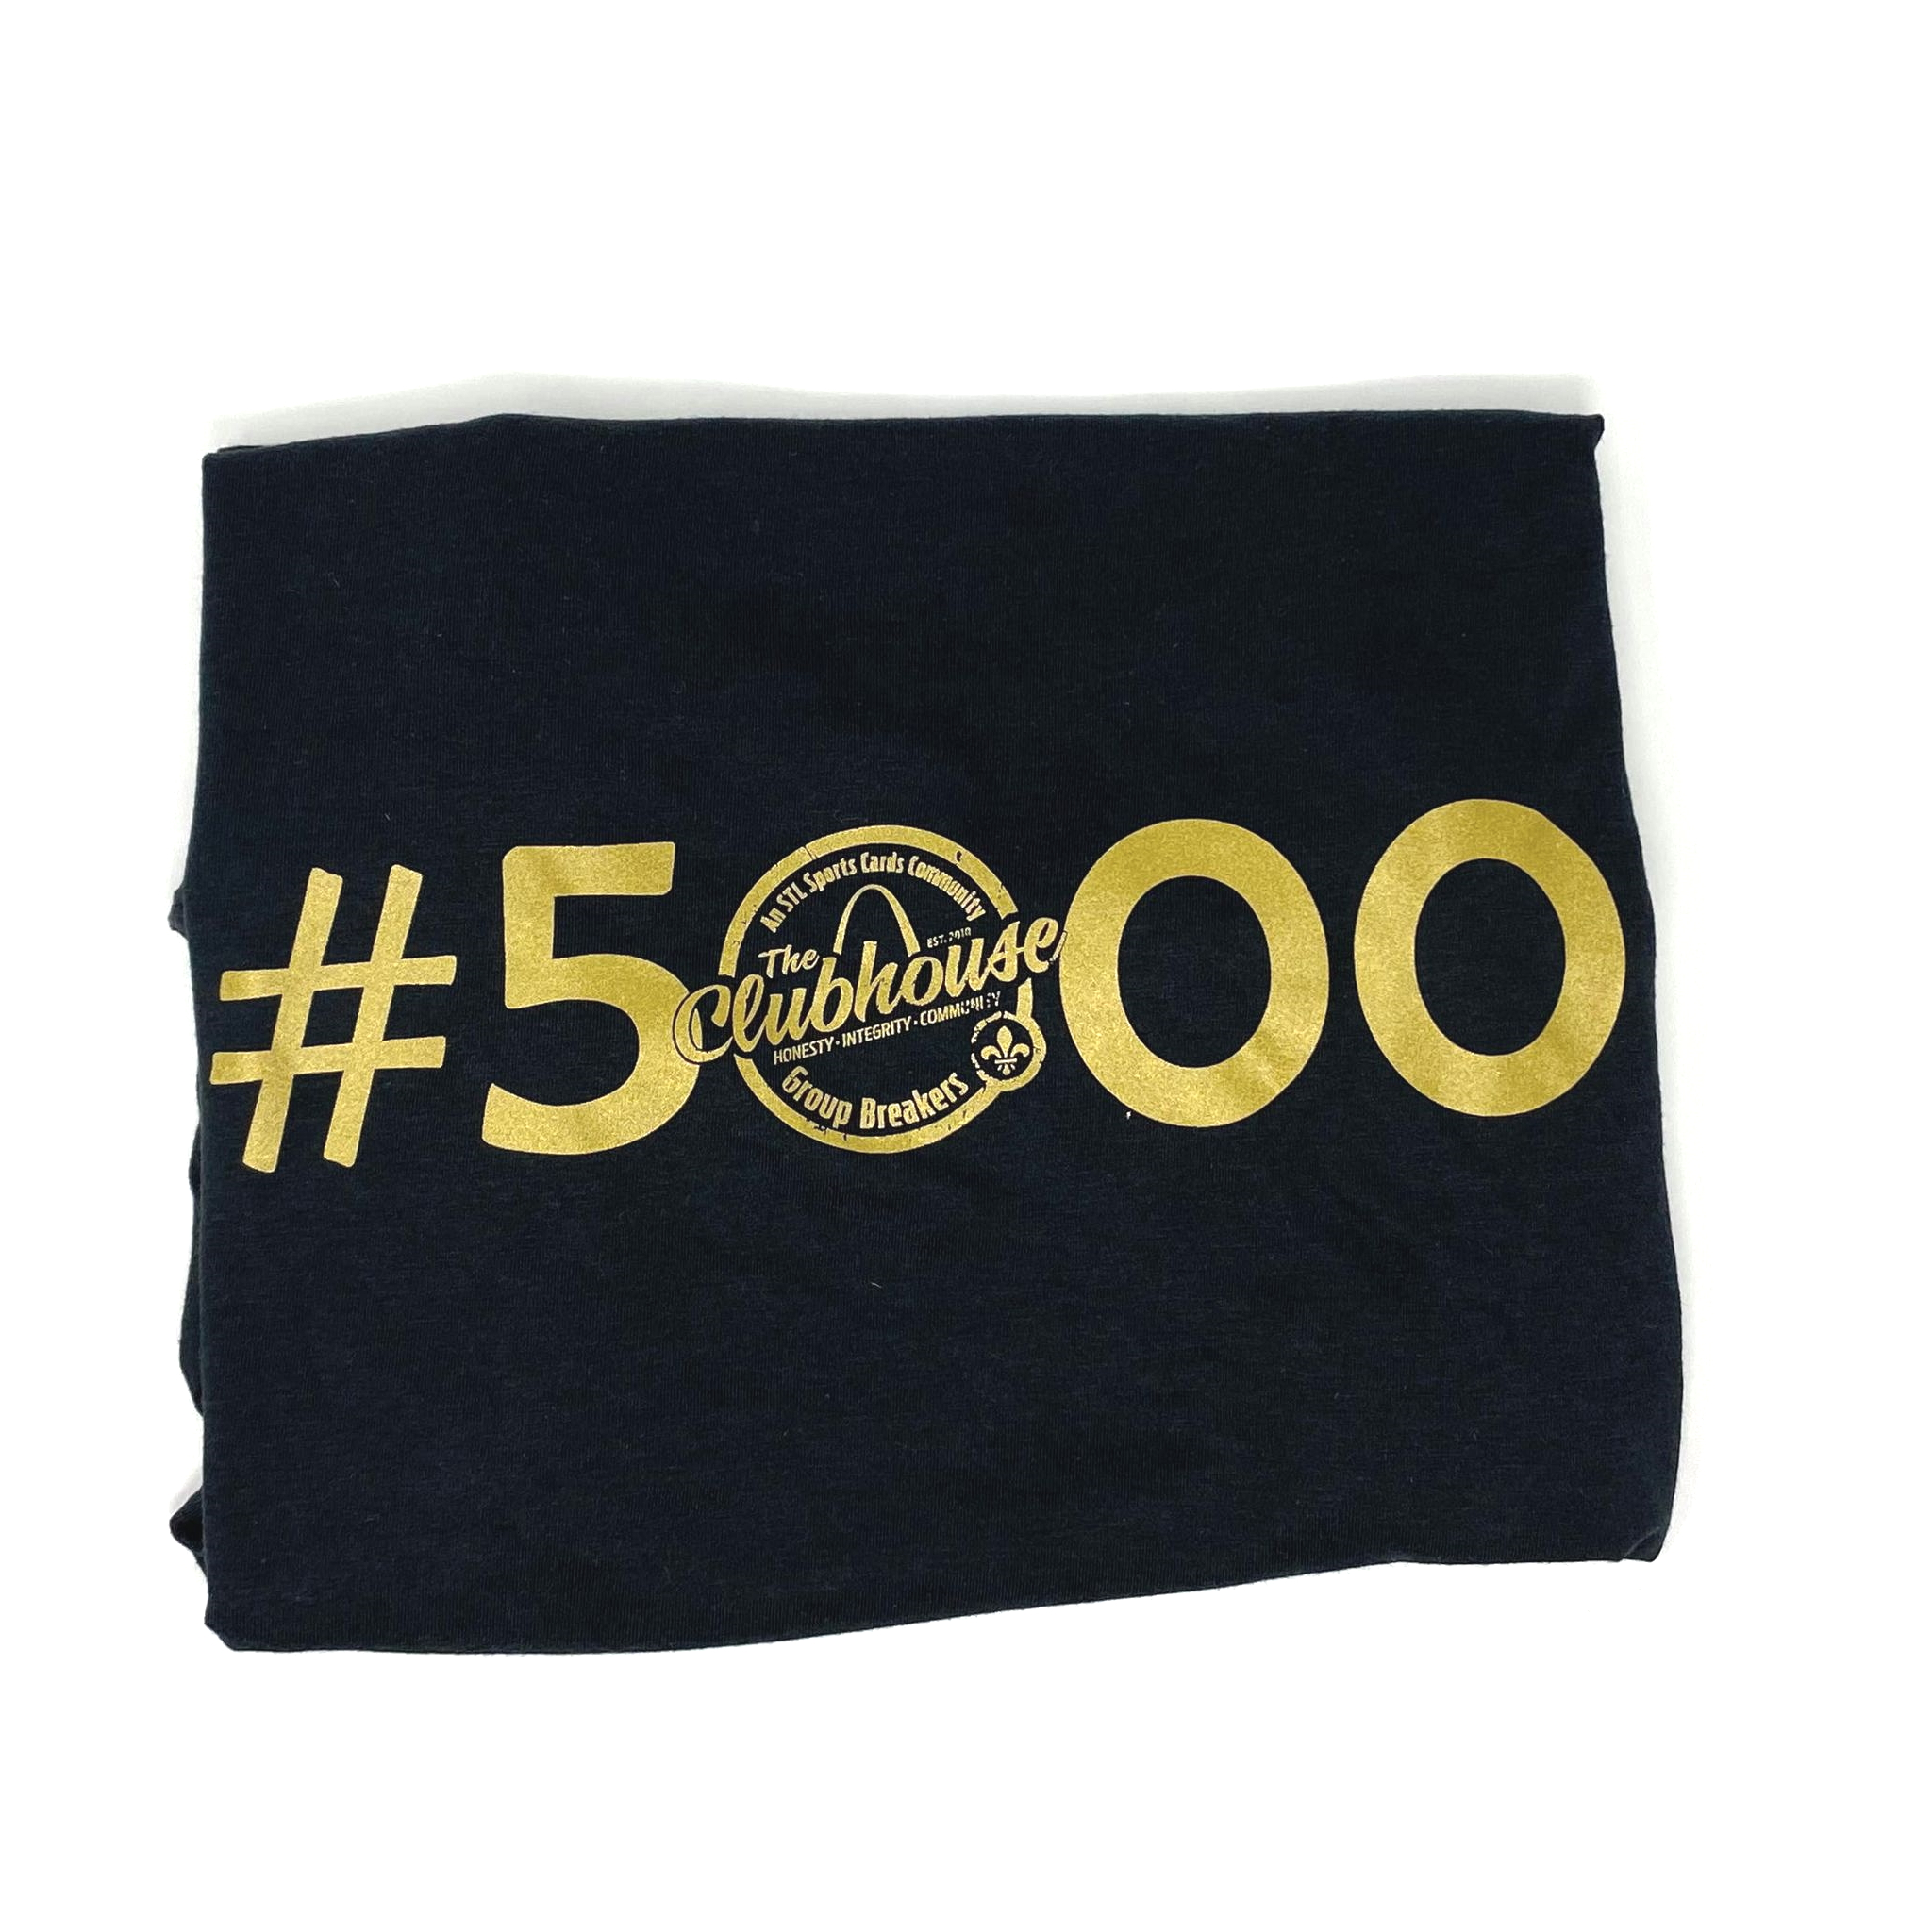 The Clubhouse Break #5000 T-Shirt, Large